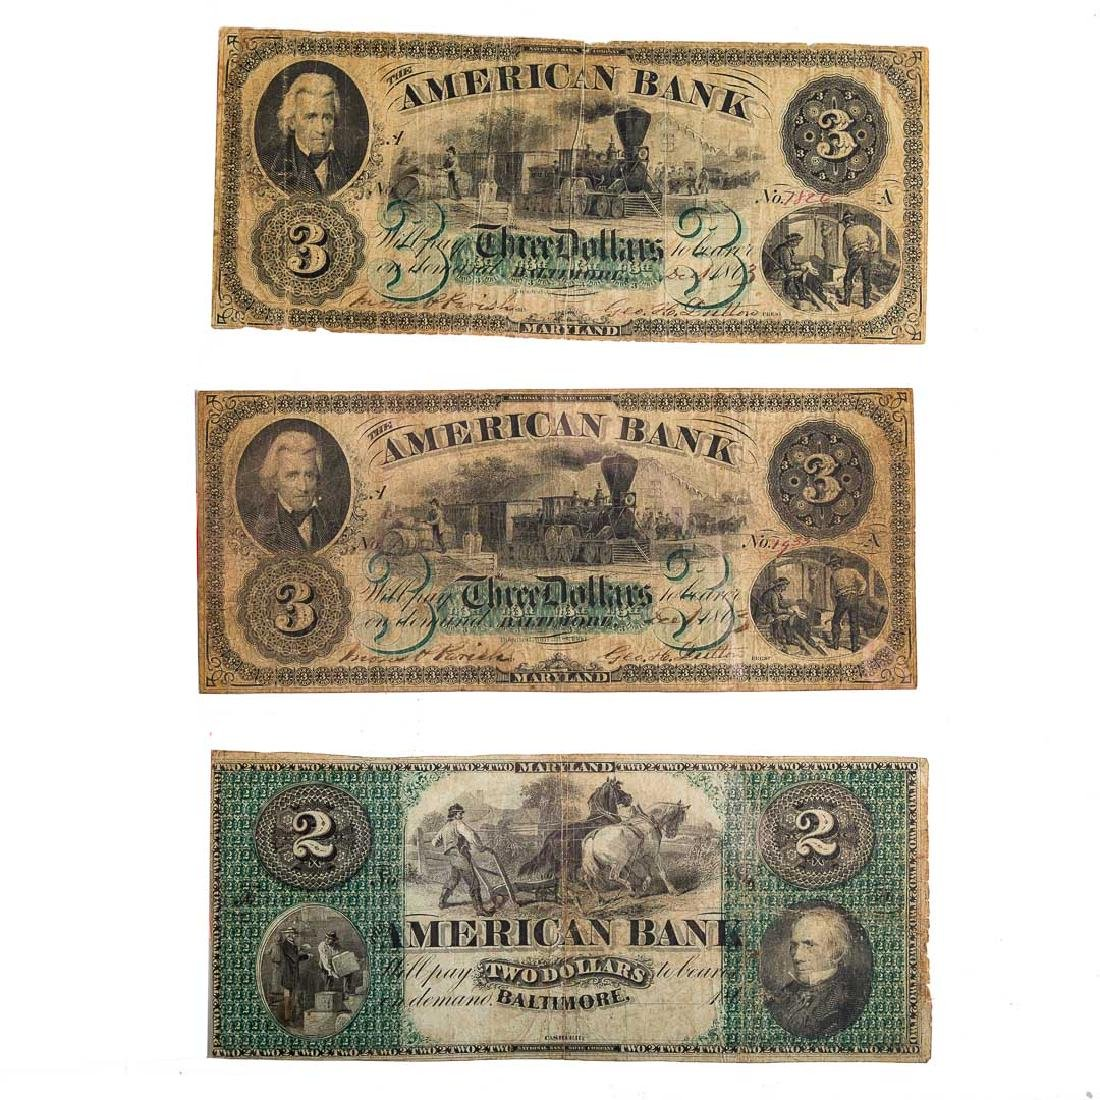 [US] Three notes from American Bank,Baltimore